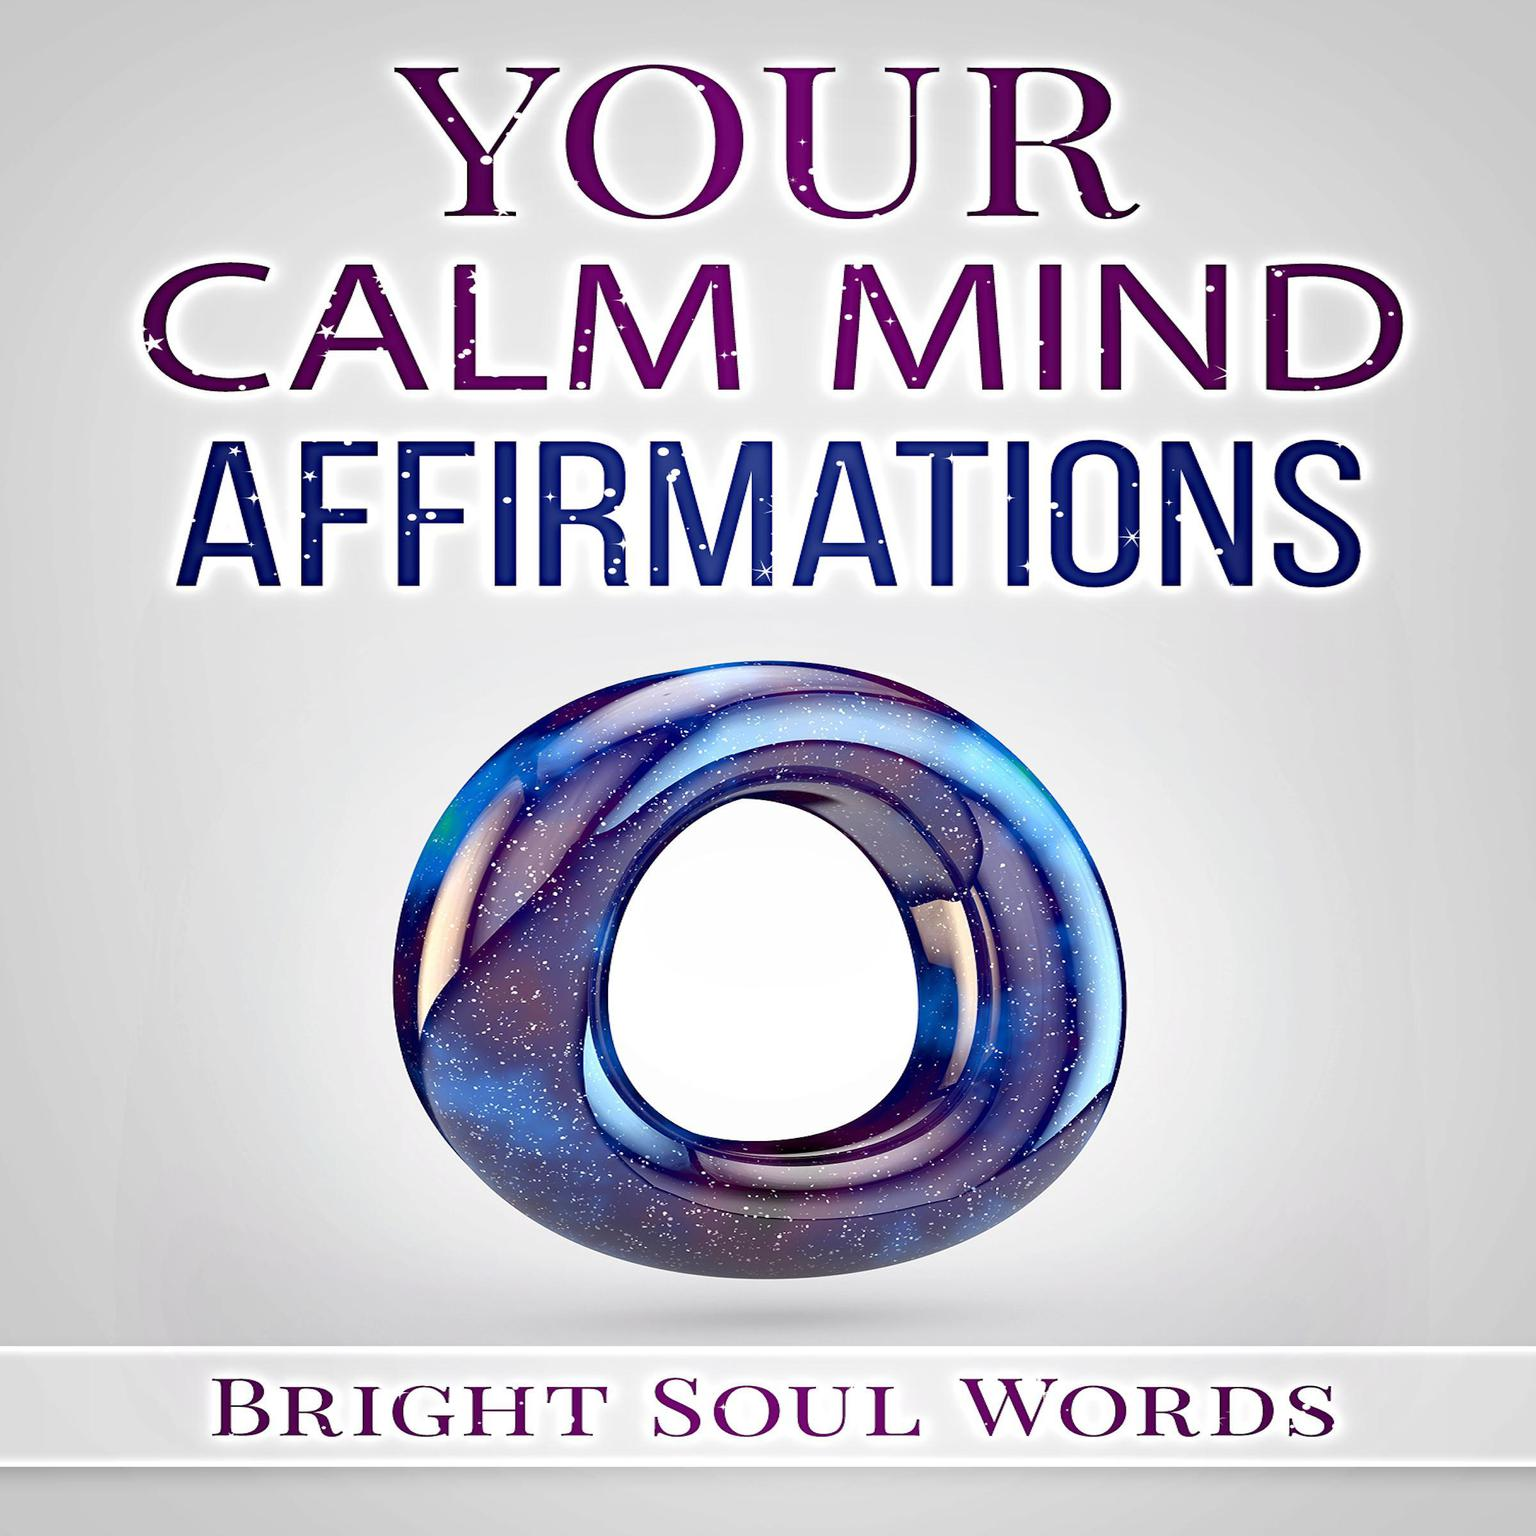 Your Calm Mind Affirmations Audiobook, by Bright Soul Words